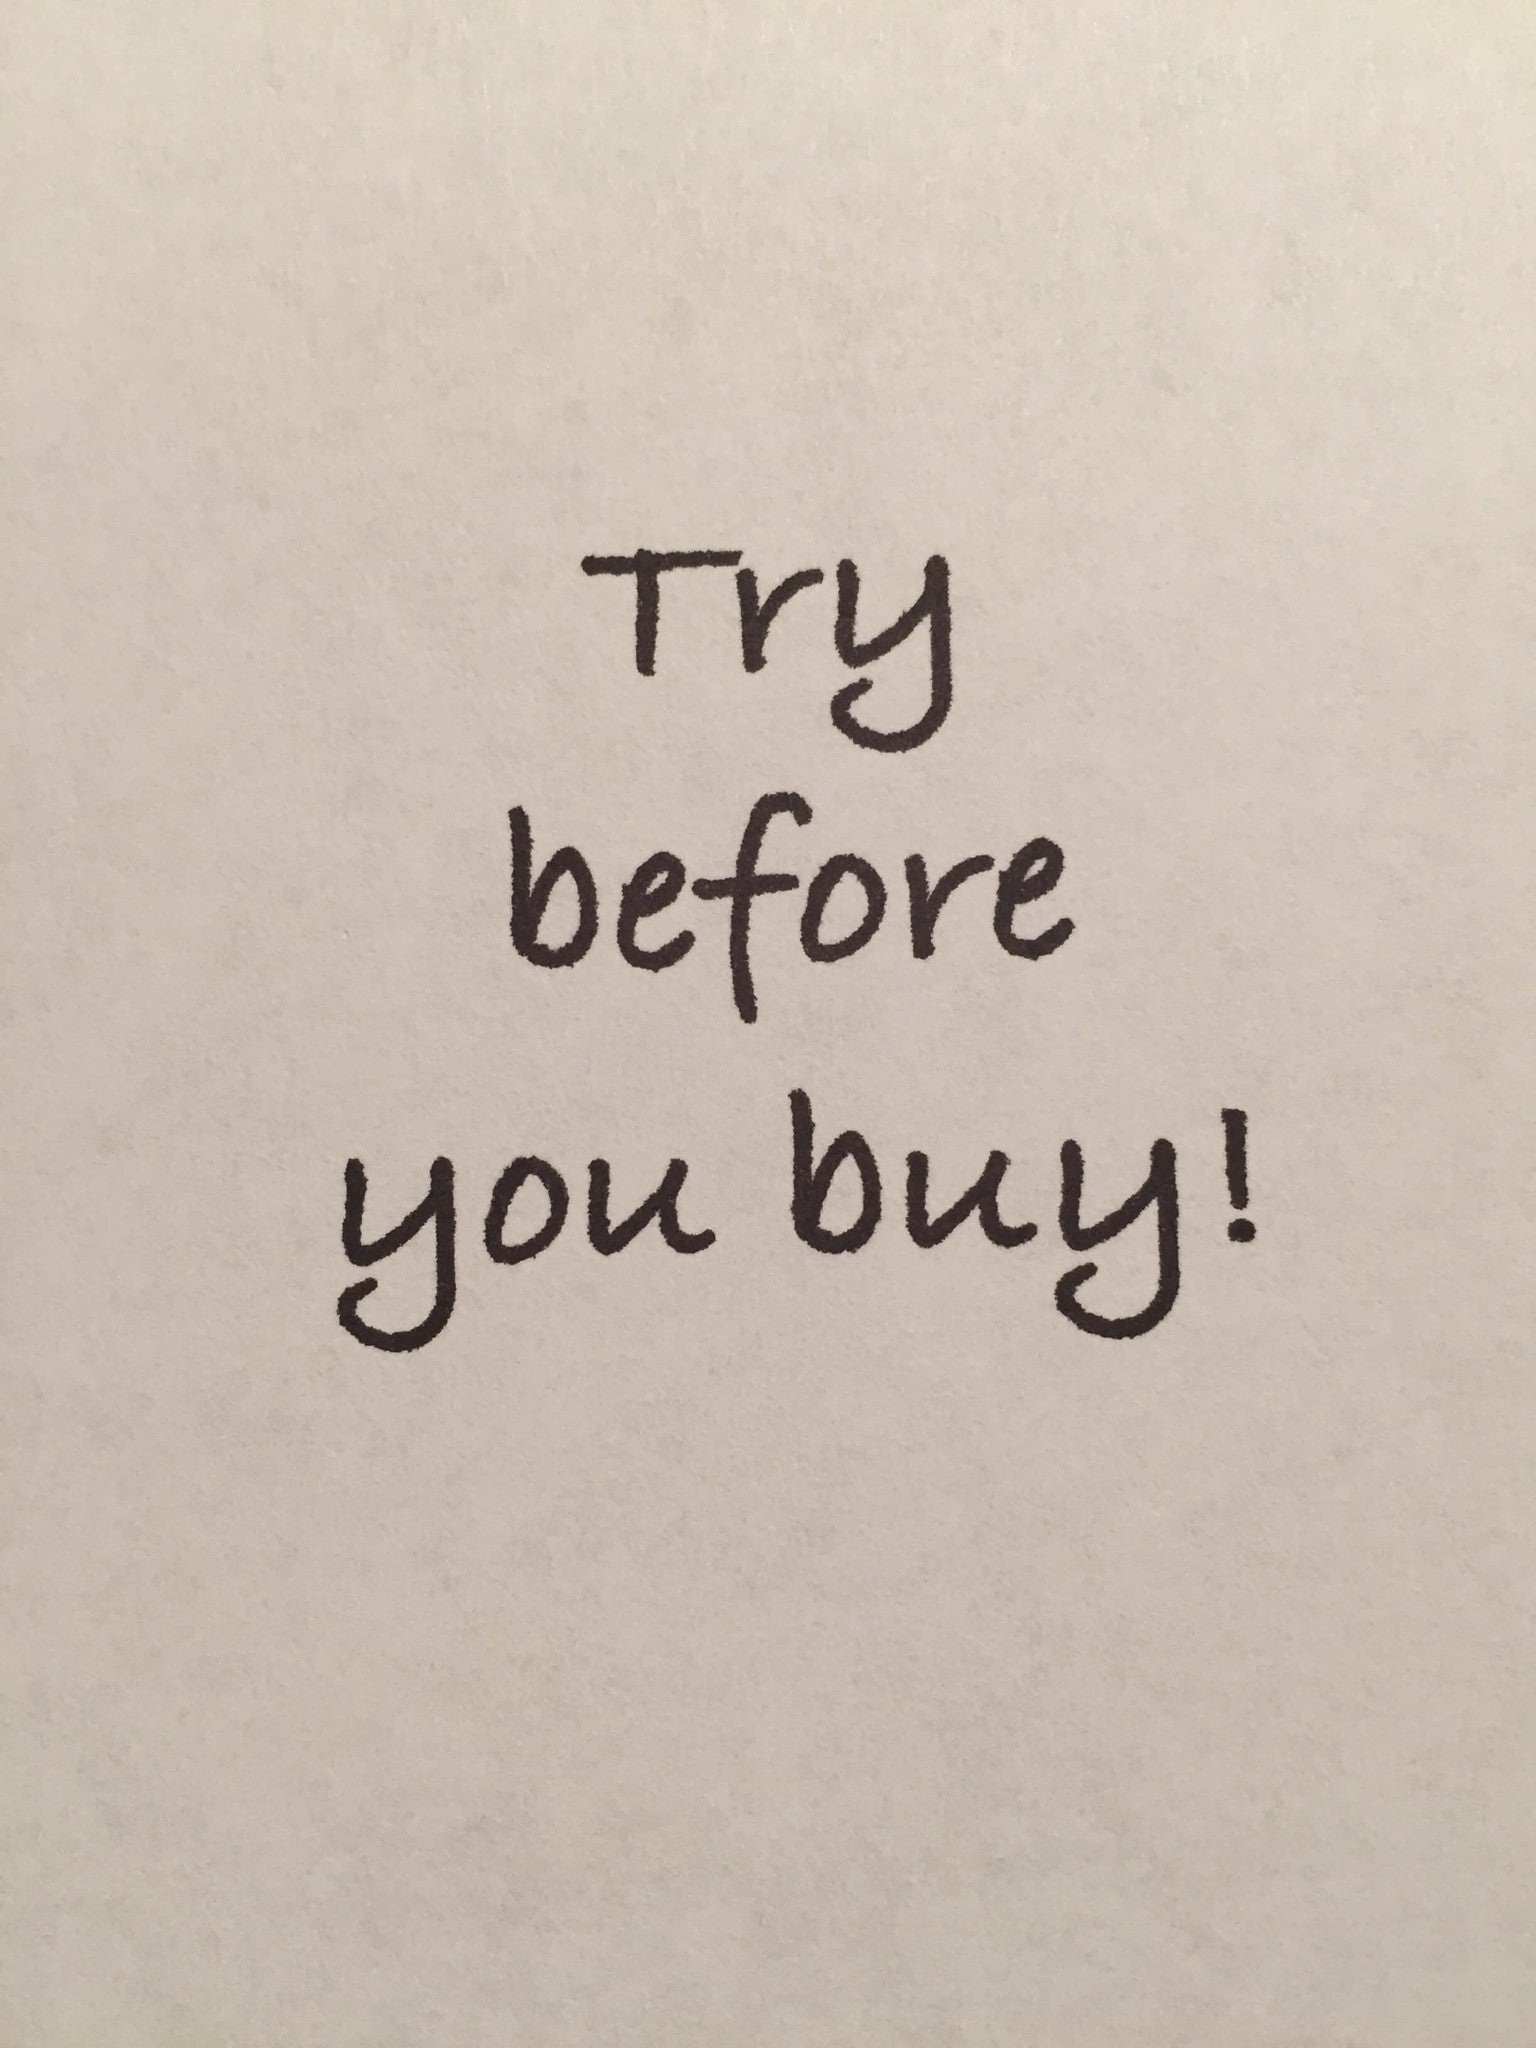 Try before you buy! - Jennifer-Anne